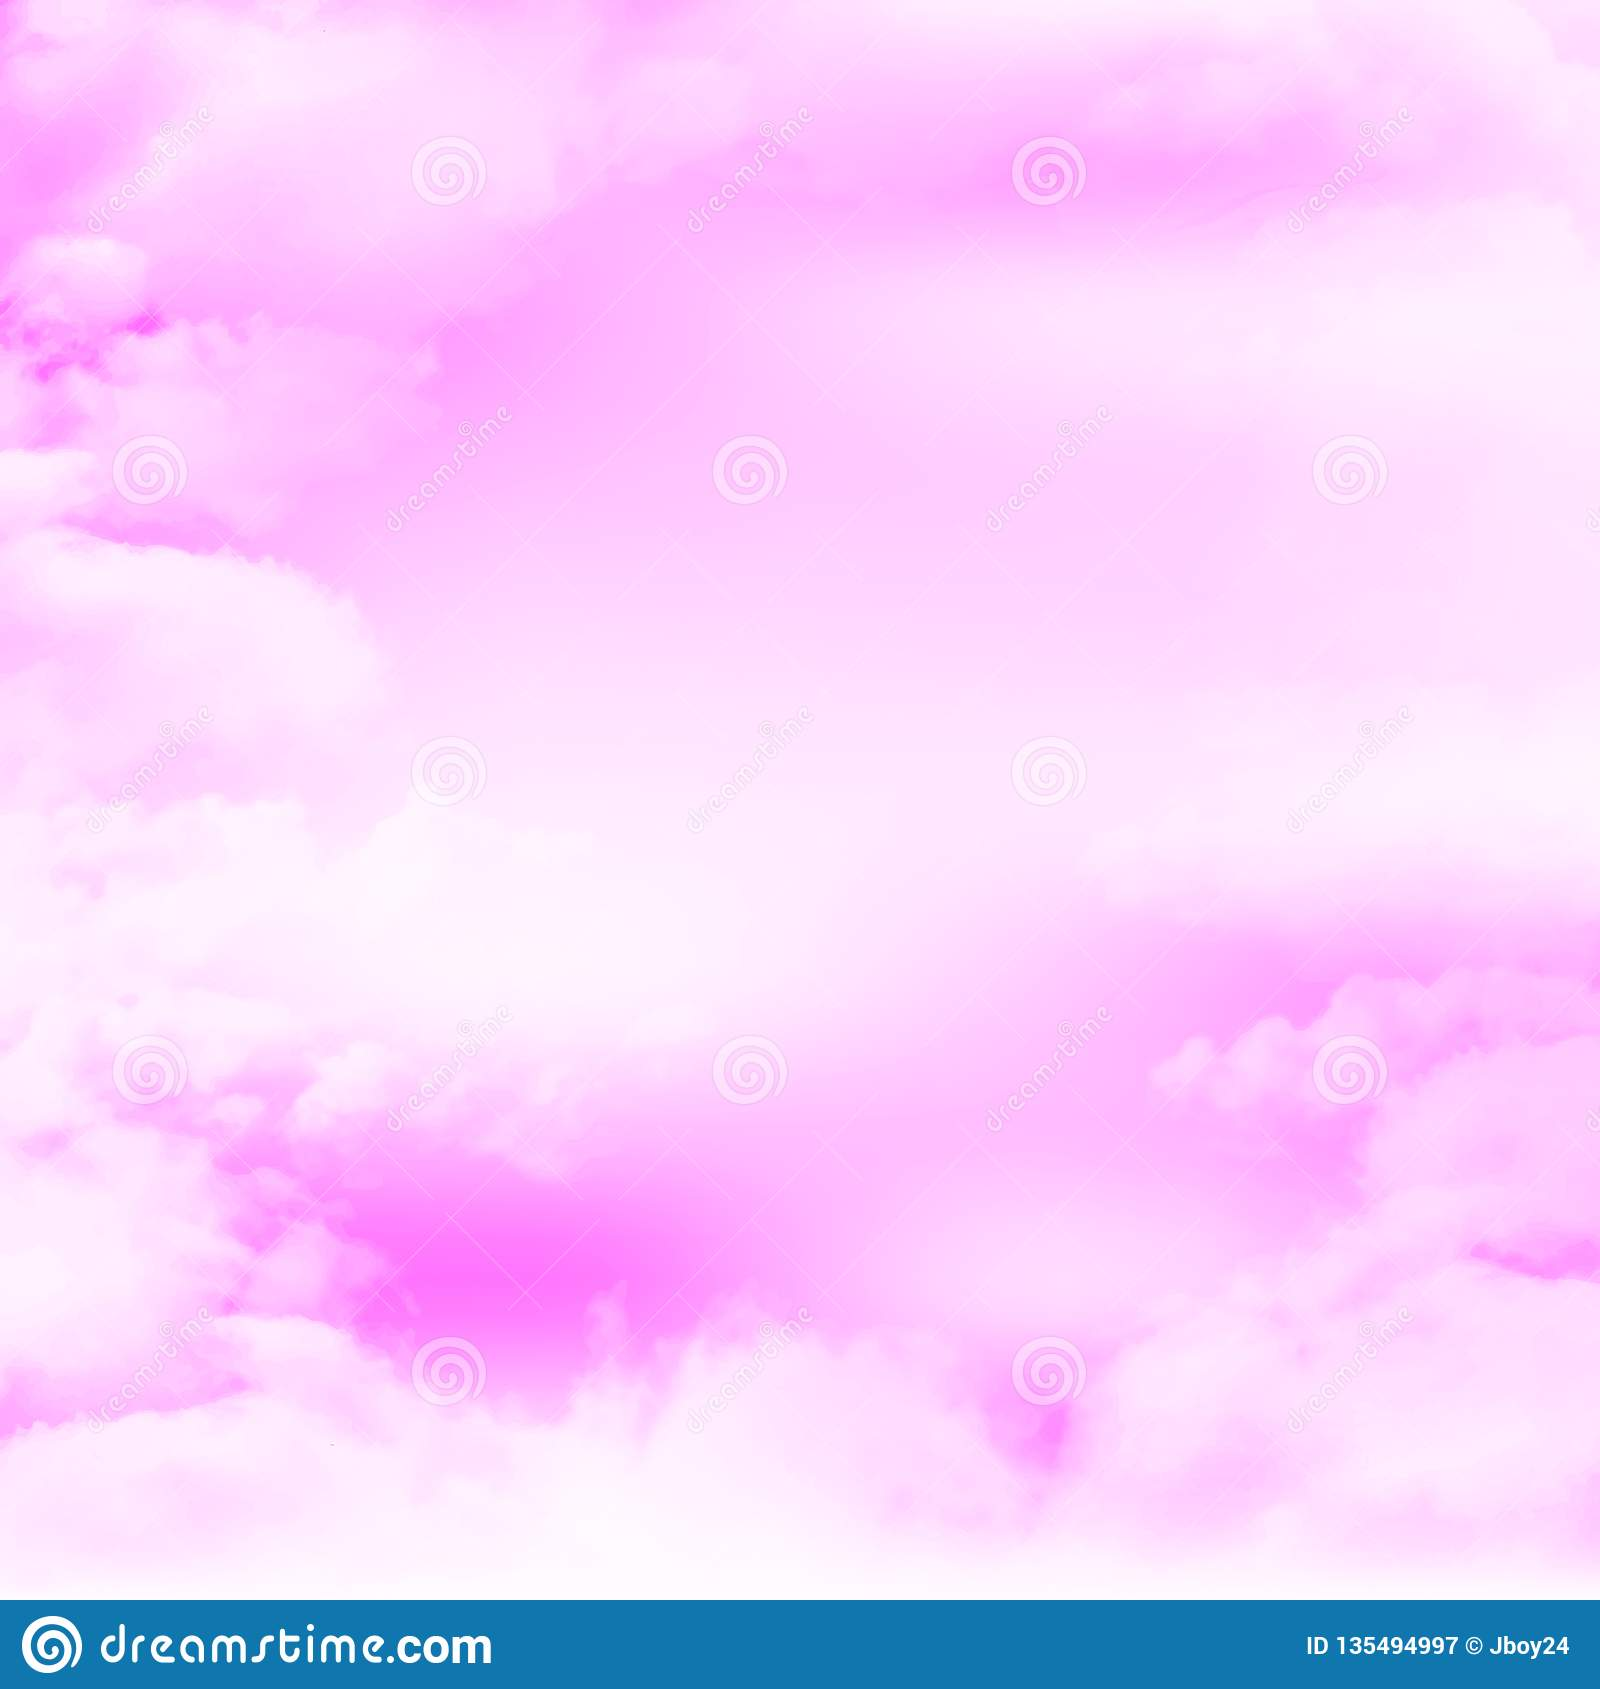 Illustration material that imagines a beautiful Japanese sky